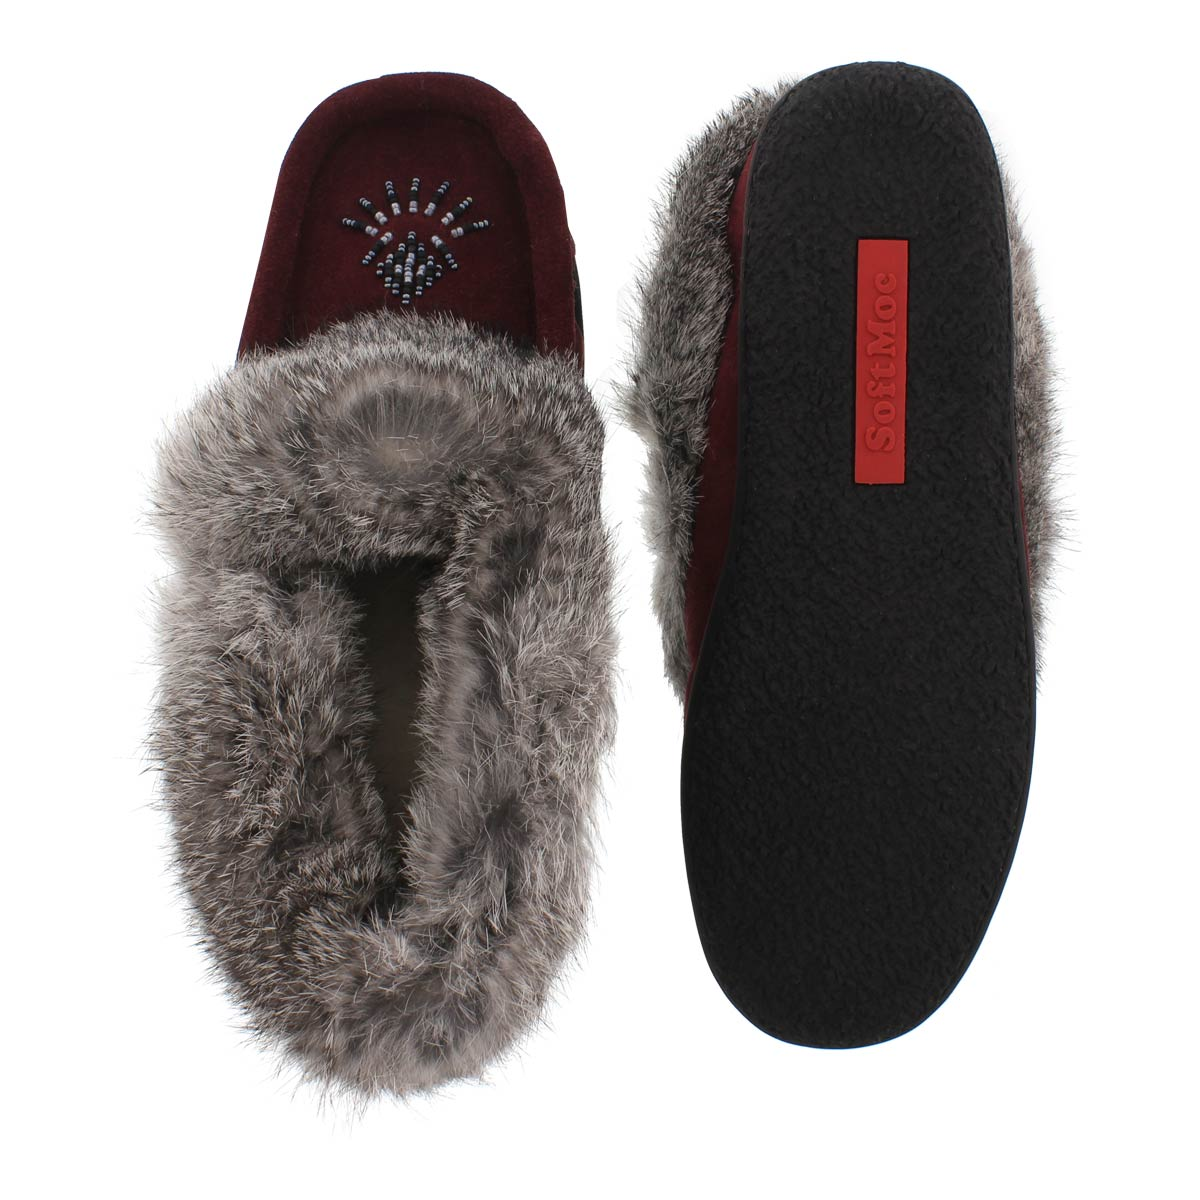 Lds Cute 3 burgundy rabbit fur moccasin